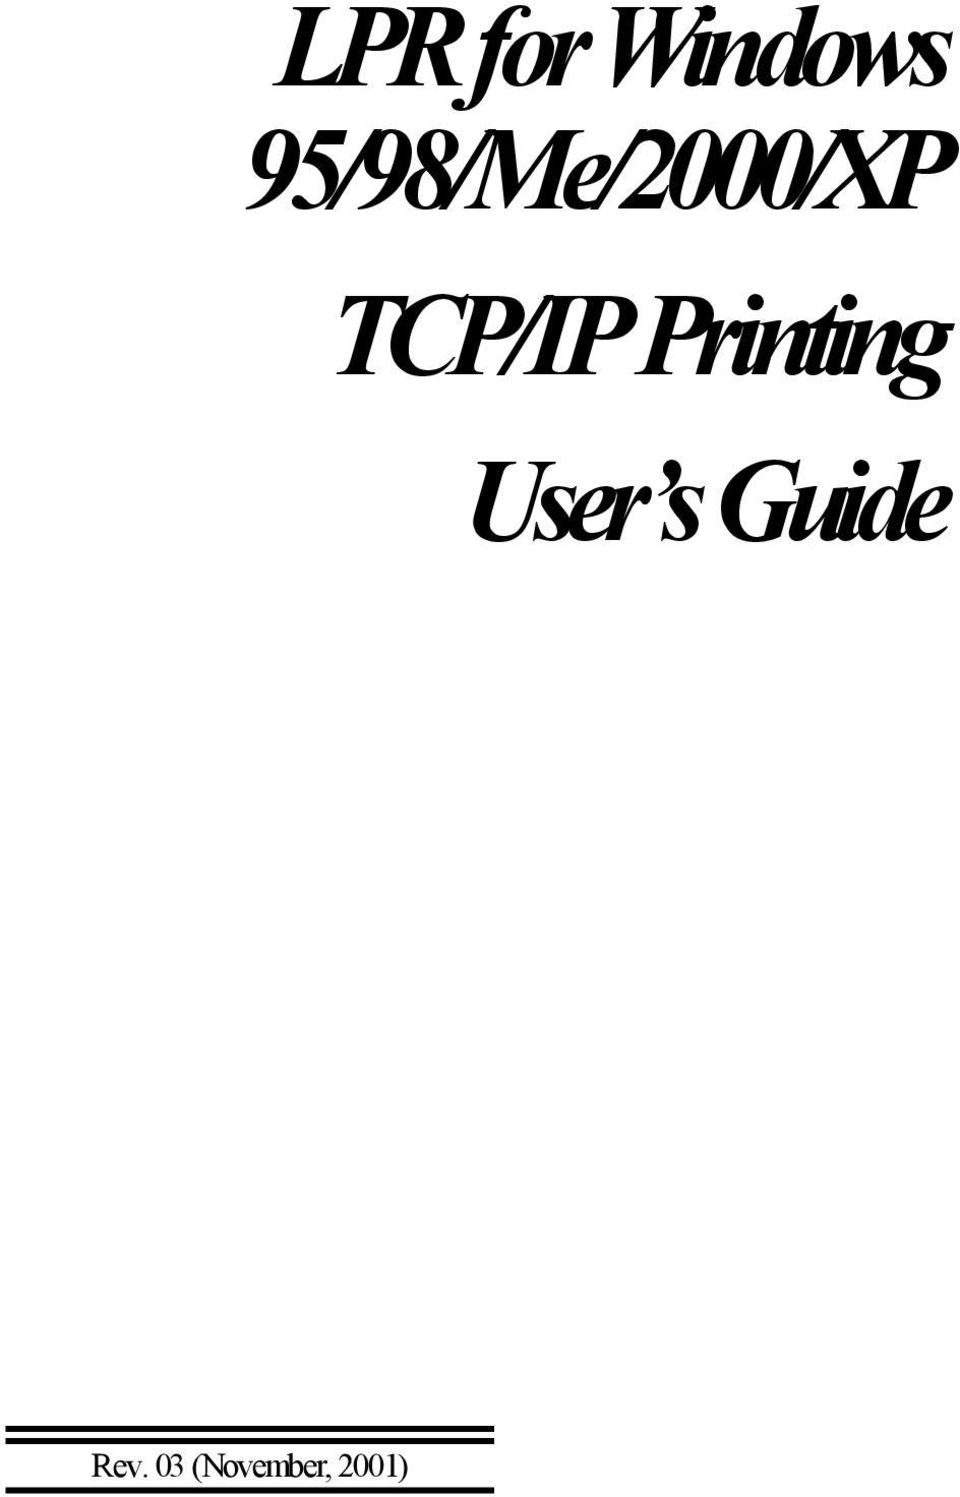 TCP/IP Printing User